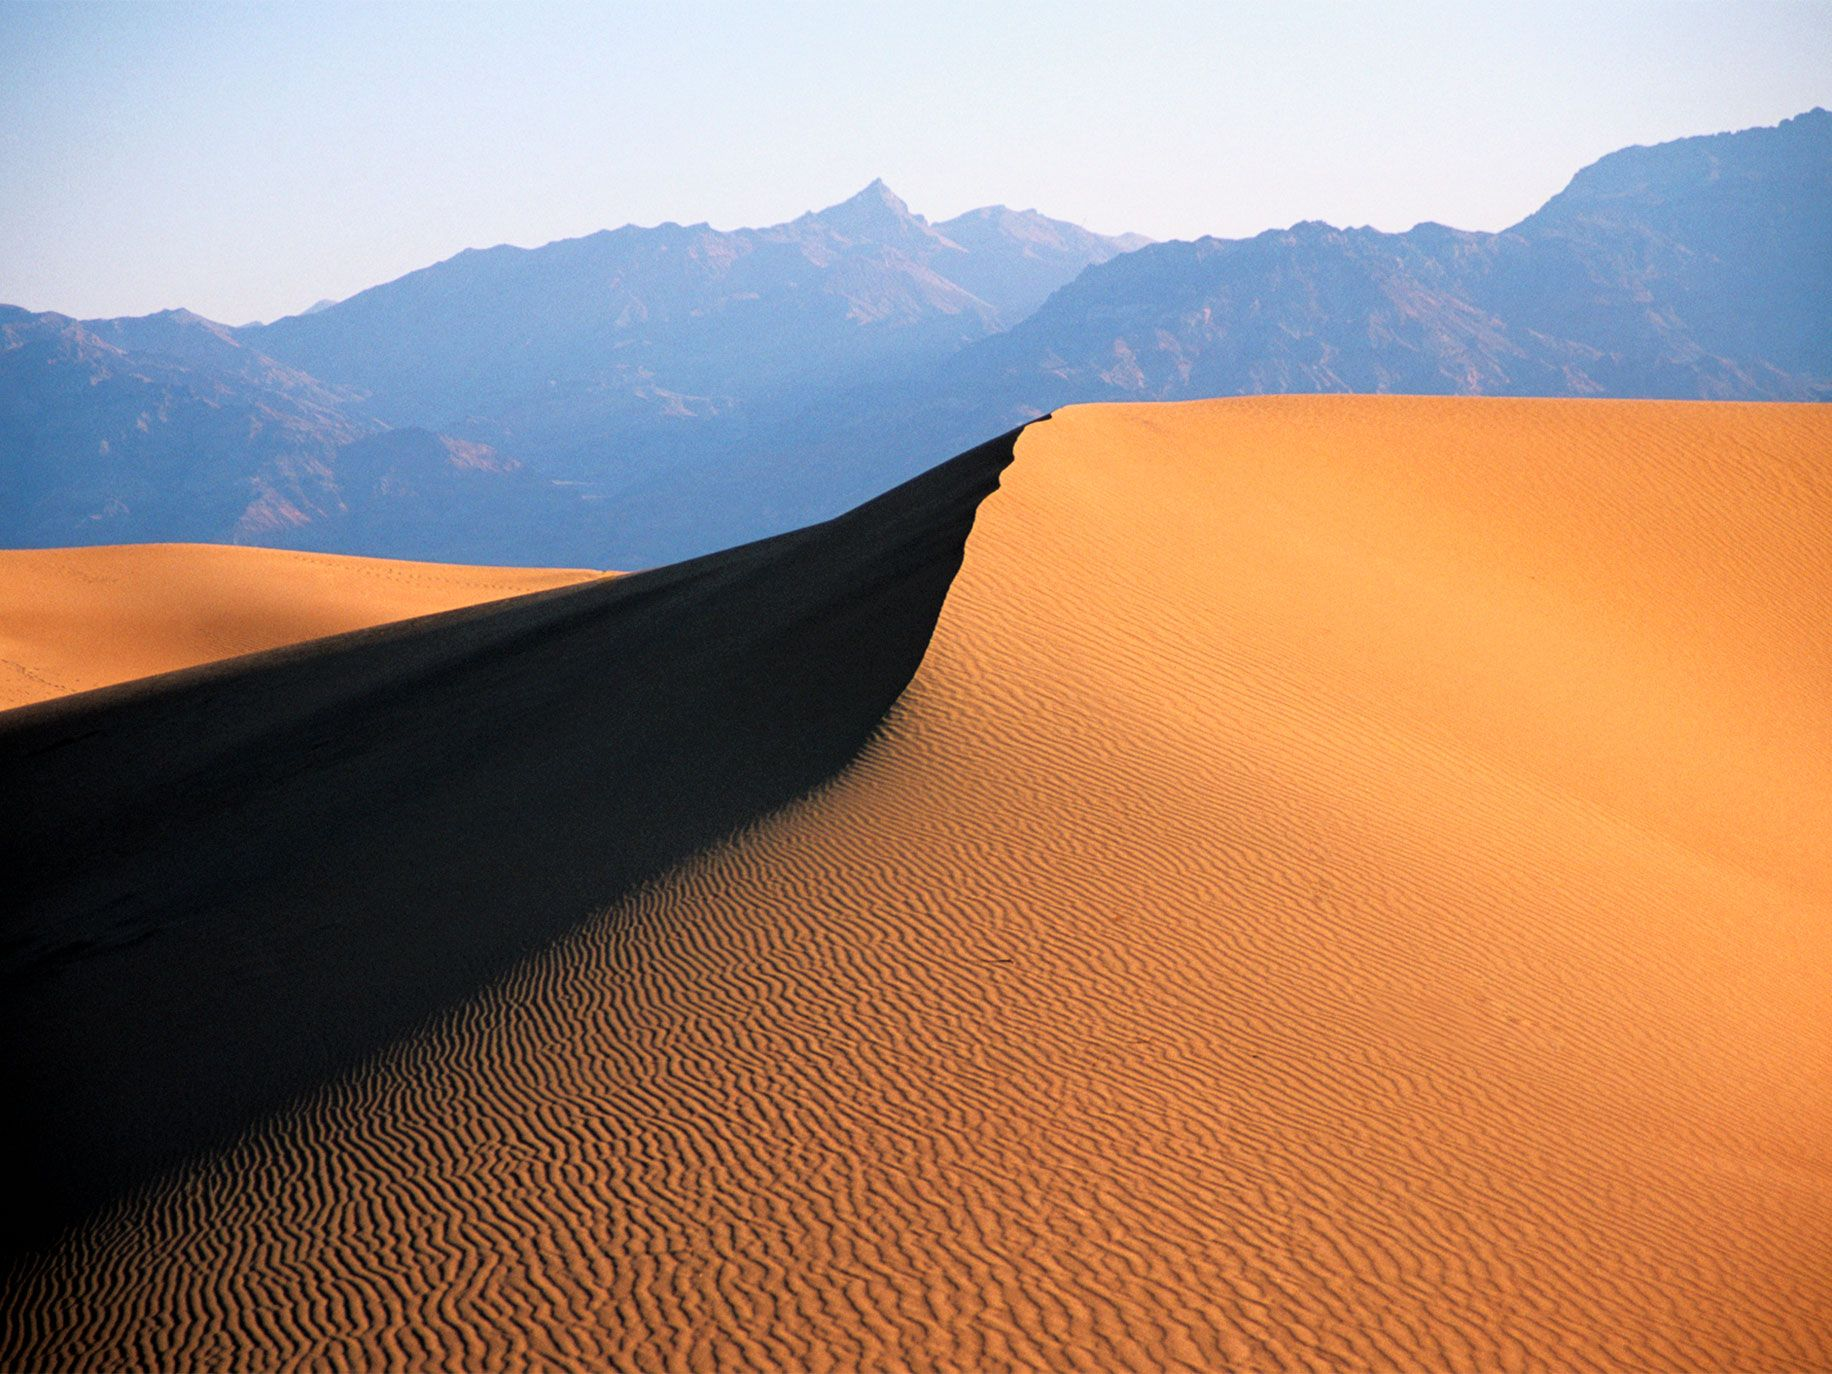 Graceful sand dunes like these cover less than 1 percent of Death Valley National Park and are protected as wilderness.